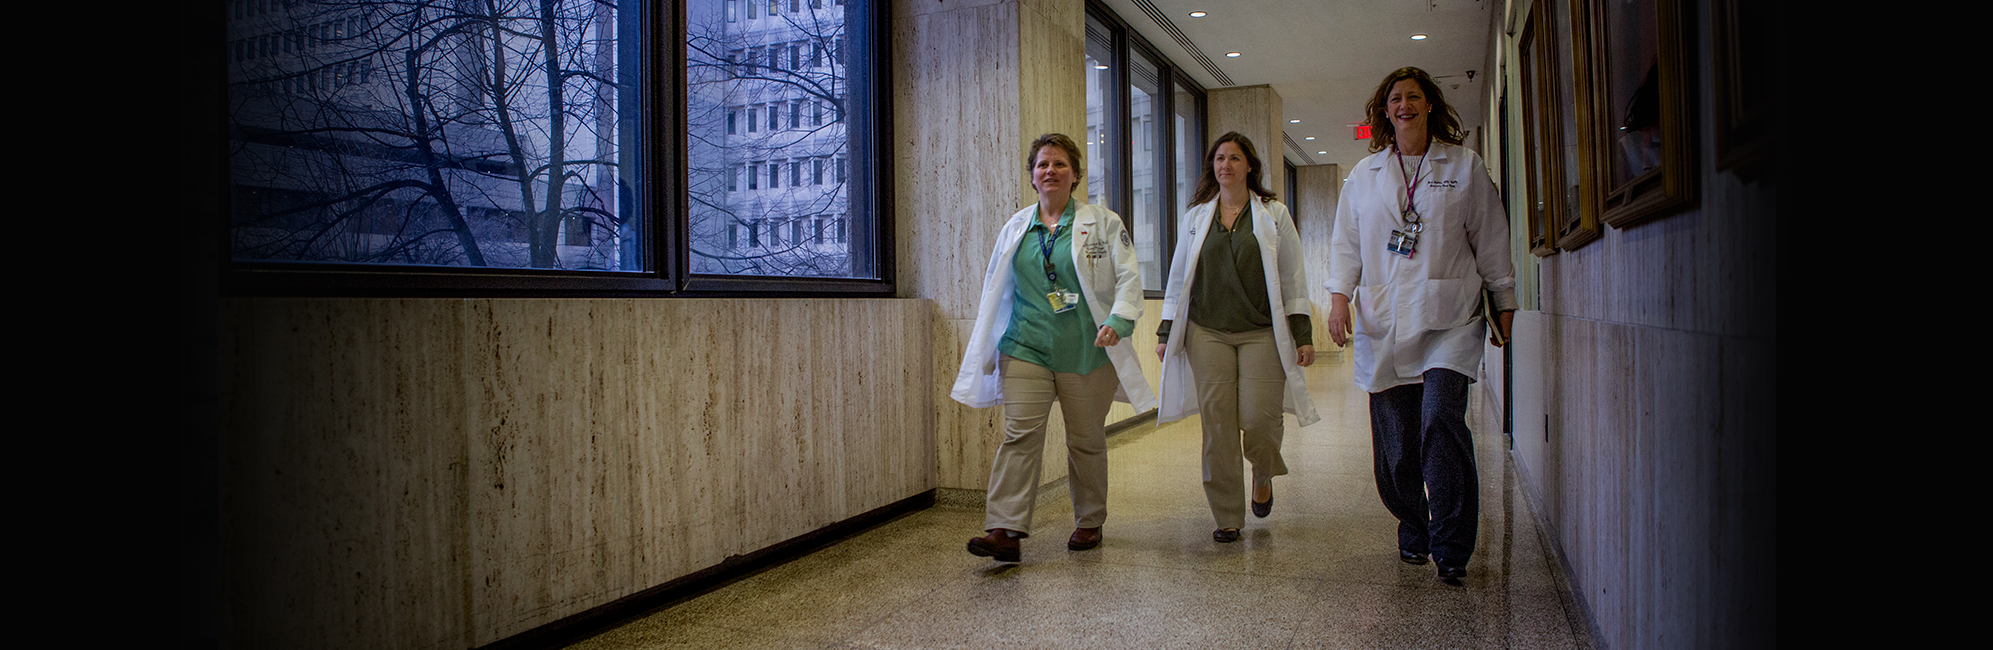 UConn Personel walk through UConn Health John Dempsey hospital hallway